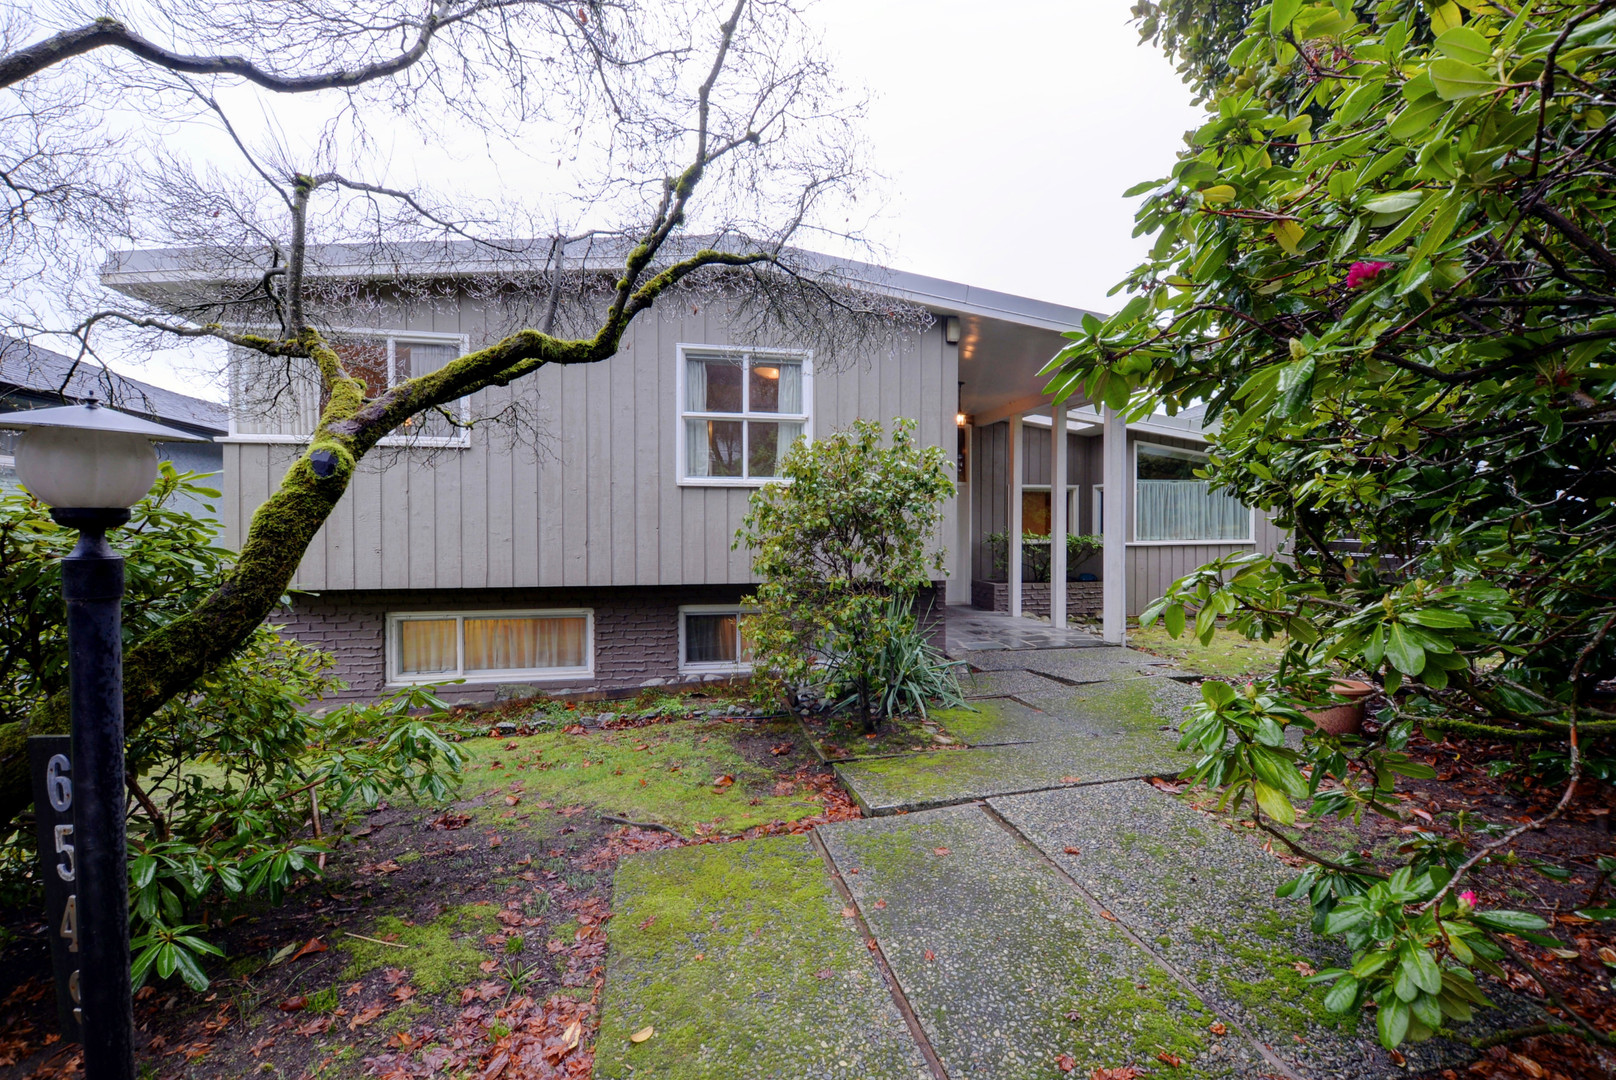 Main Photo: 6549 beechwood st in vancouver: Kerrisdale House for sale (Vancouver West)  : MLS®# r2232711